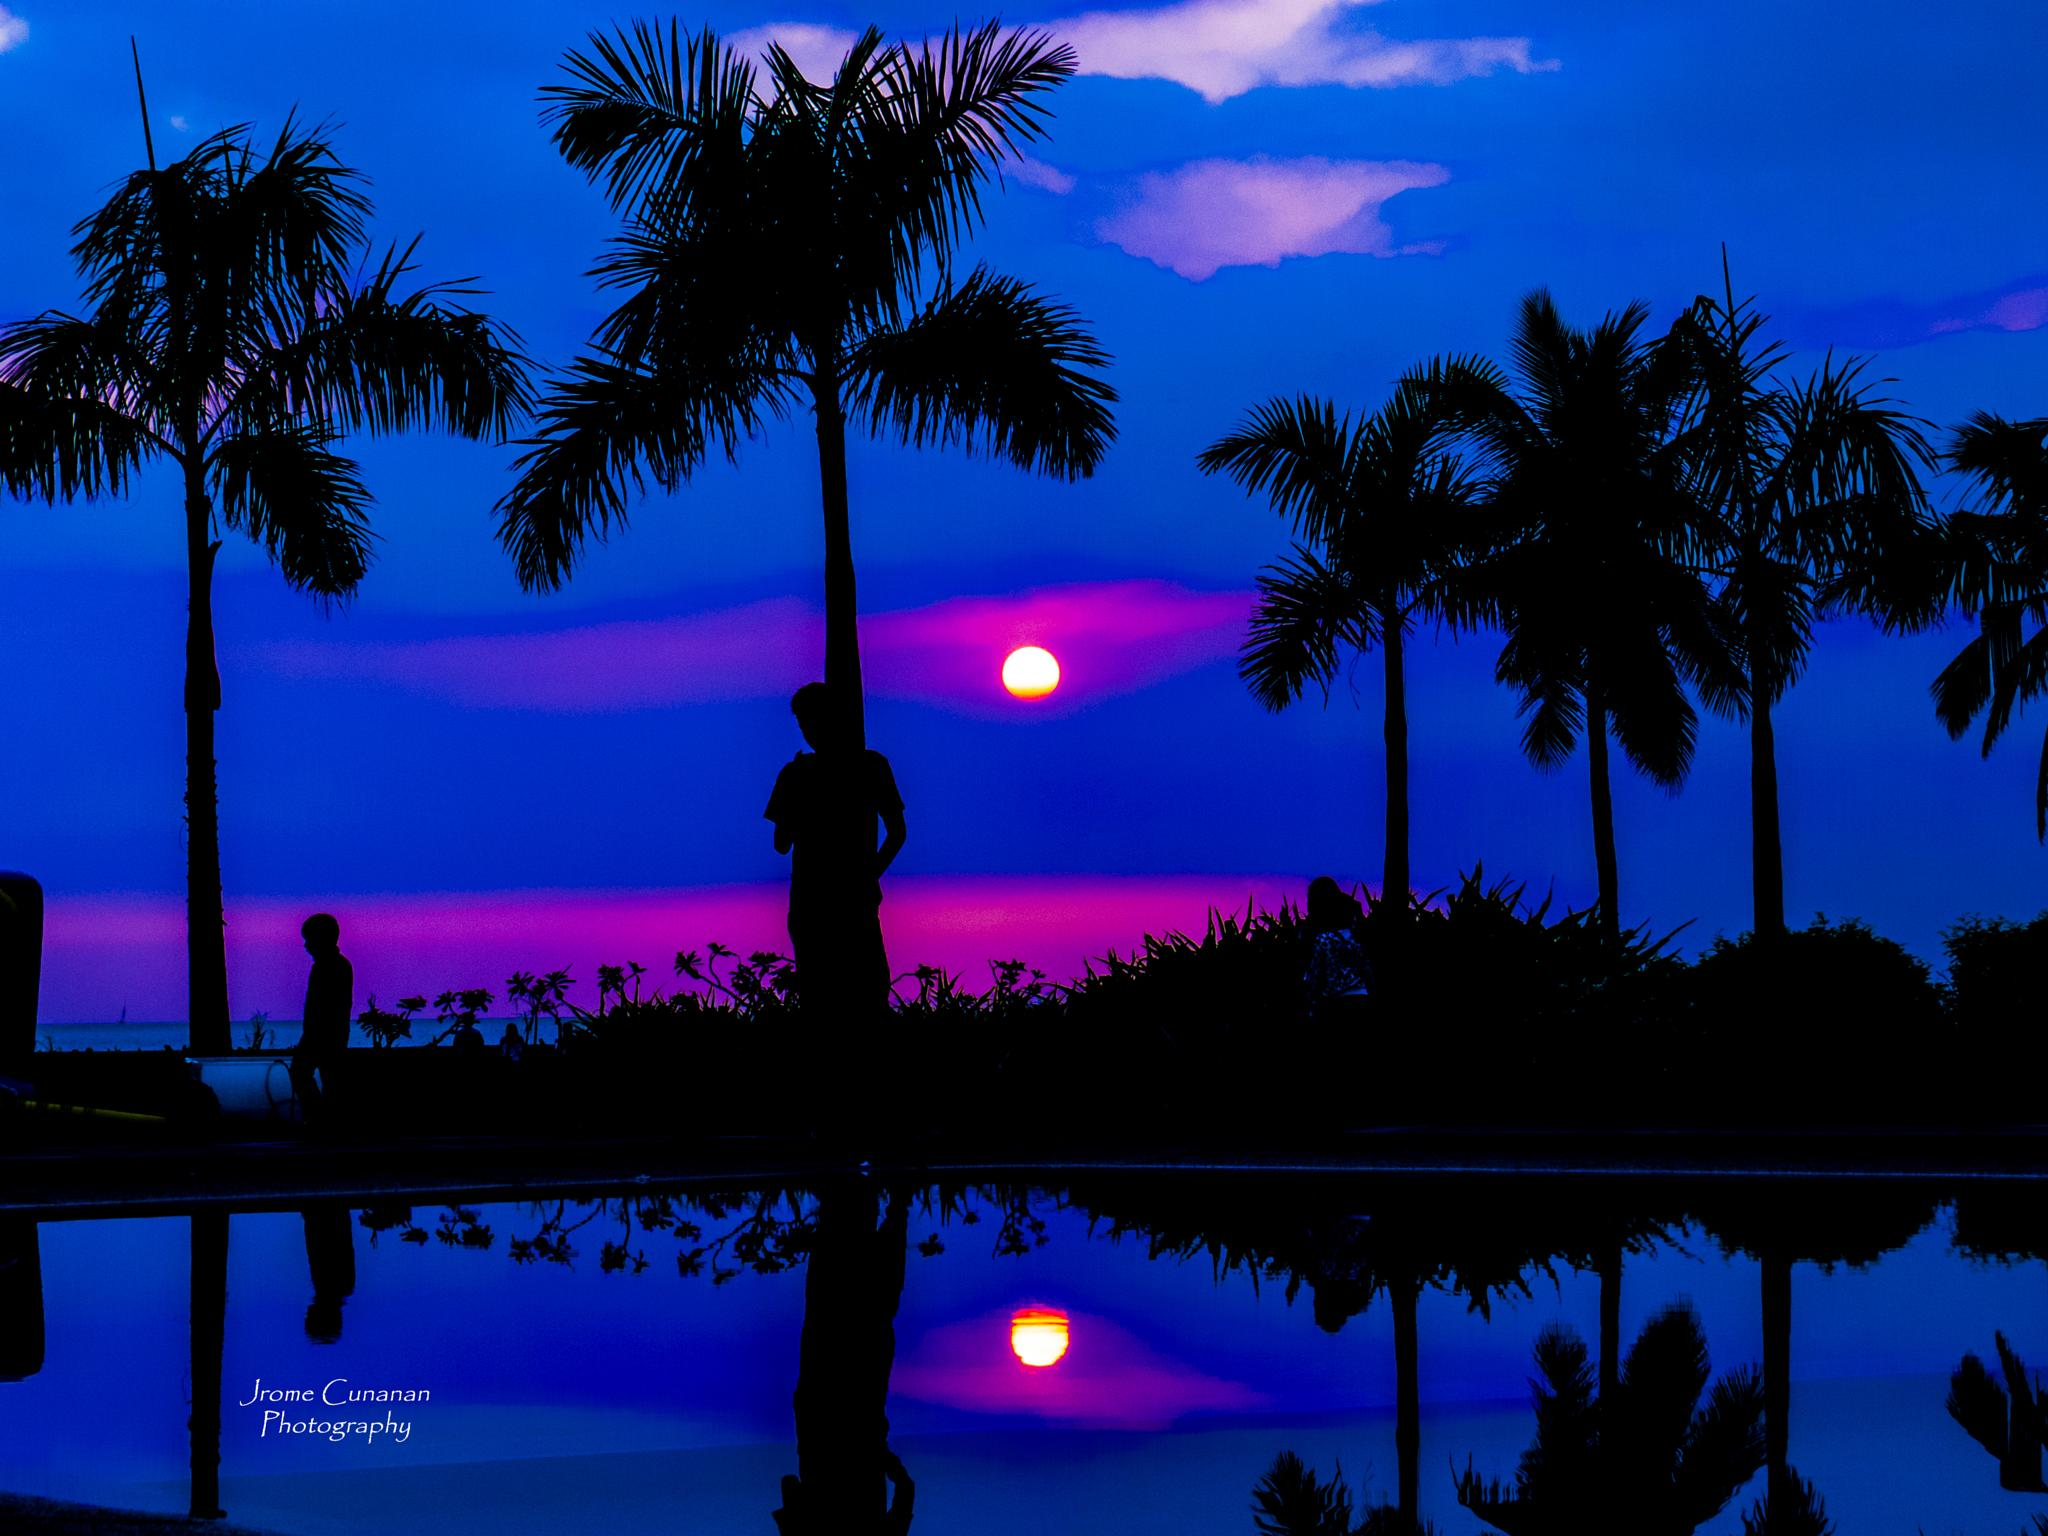 Twilight Sunset by jrome.cunanan.5